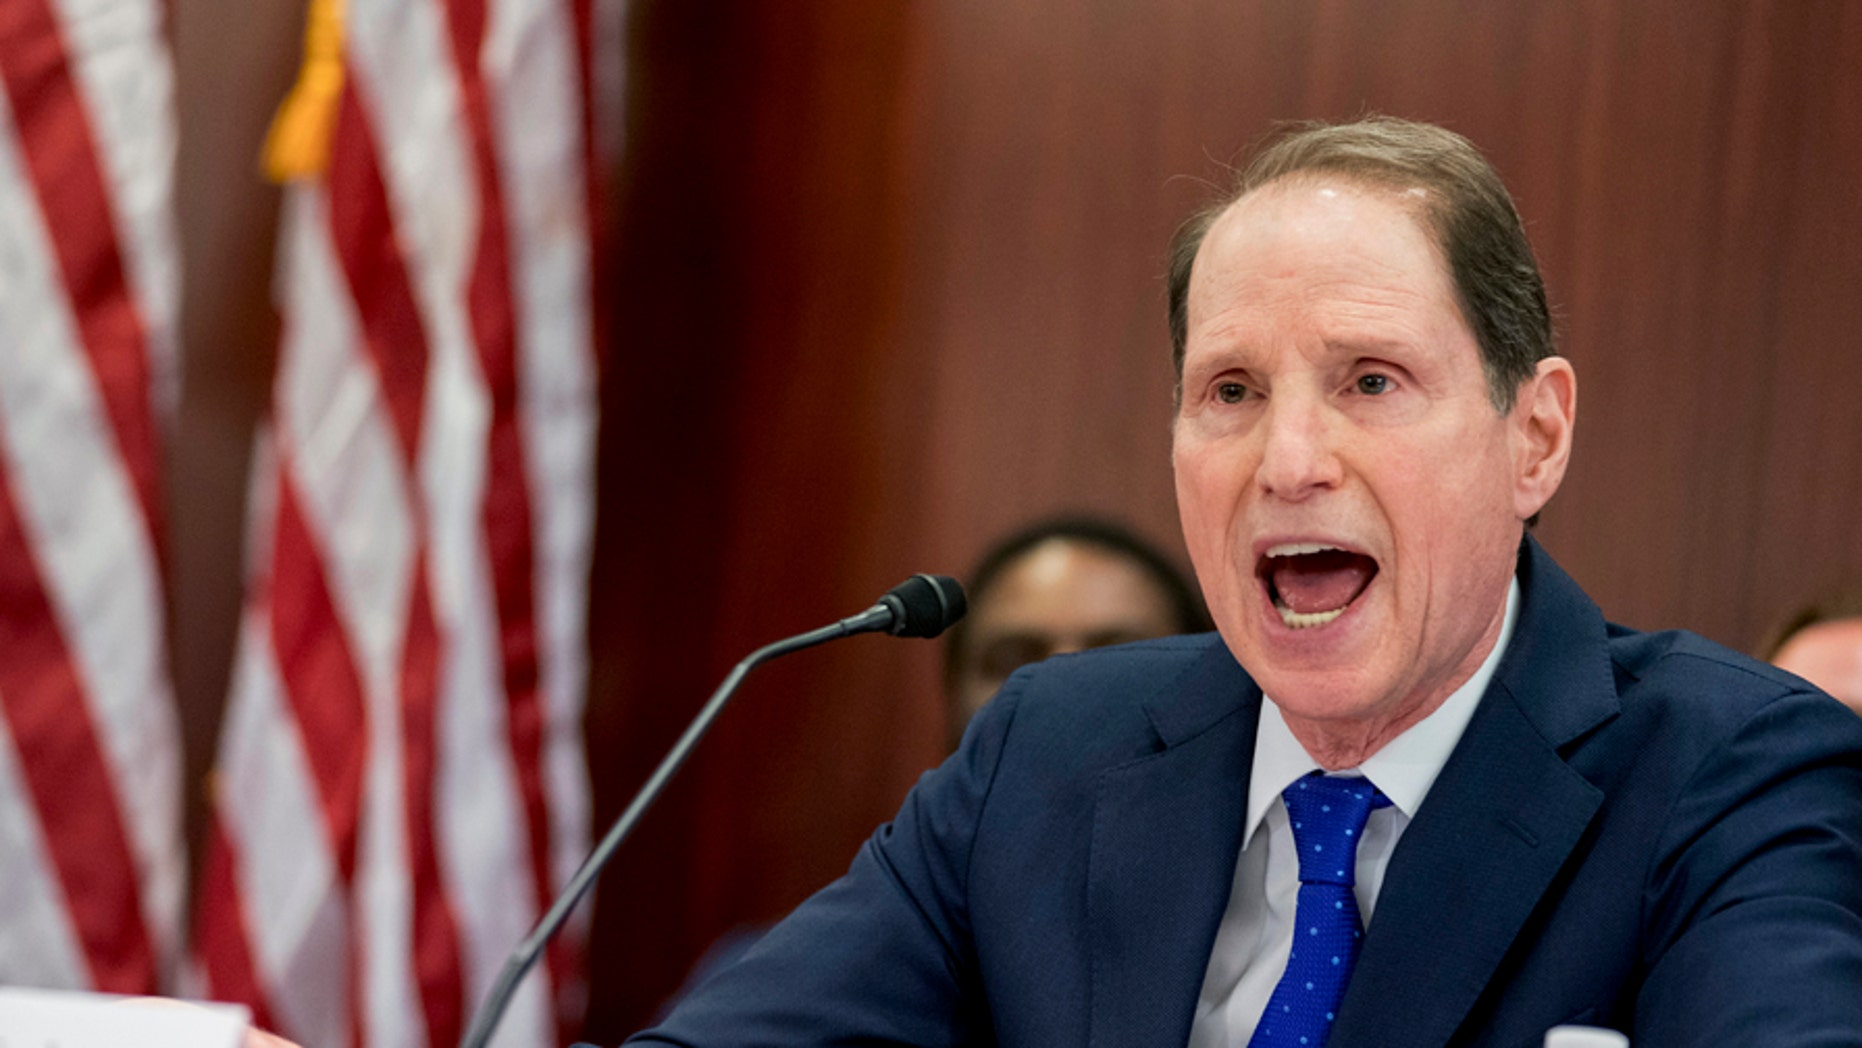 Sen. Ron Wyden, D-Ore., the top Democrat on the Senate Finance Committee speaks during a House and Senate conference after GOP leaders announced they have forged an agreement on a sweeping overhaul of the nation's tax laws, on Capitol Hill in Washington, Wednesday, Dec. 13, 2017. Democrats objected to the bill and asked that a final vote be delayed until Sen.-elect Doug Jones of Alabama is seated. (AP Photo/Andrew Harnik)